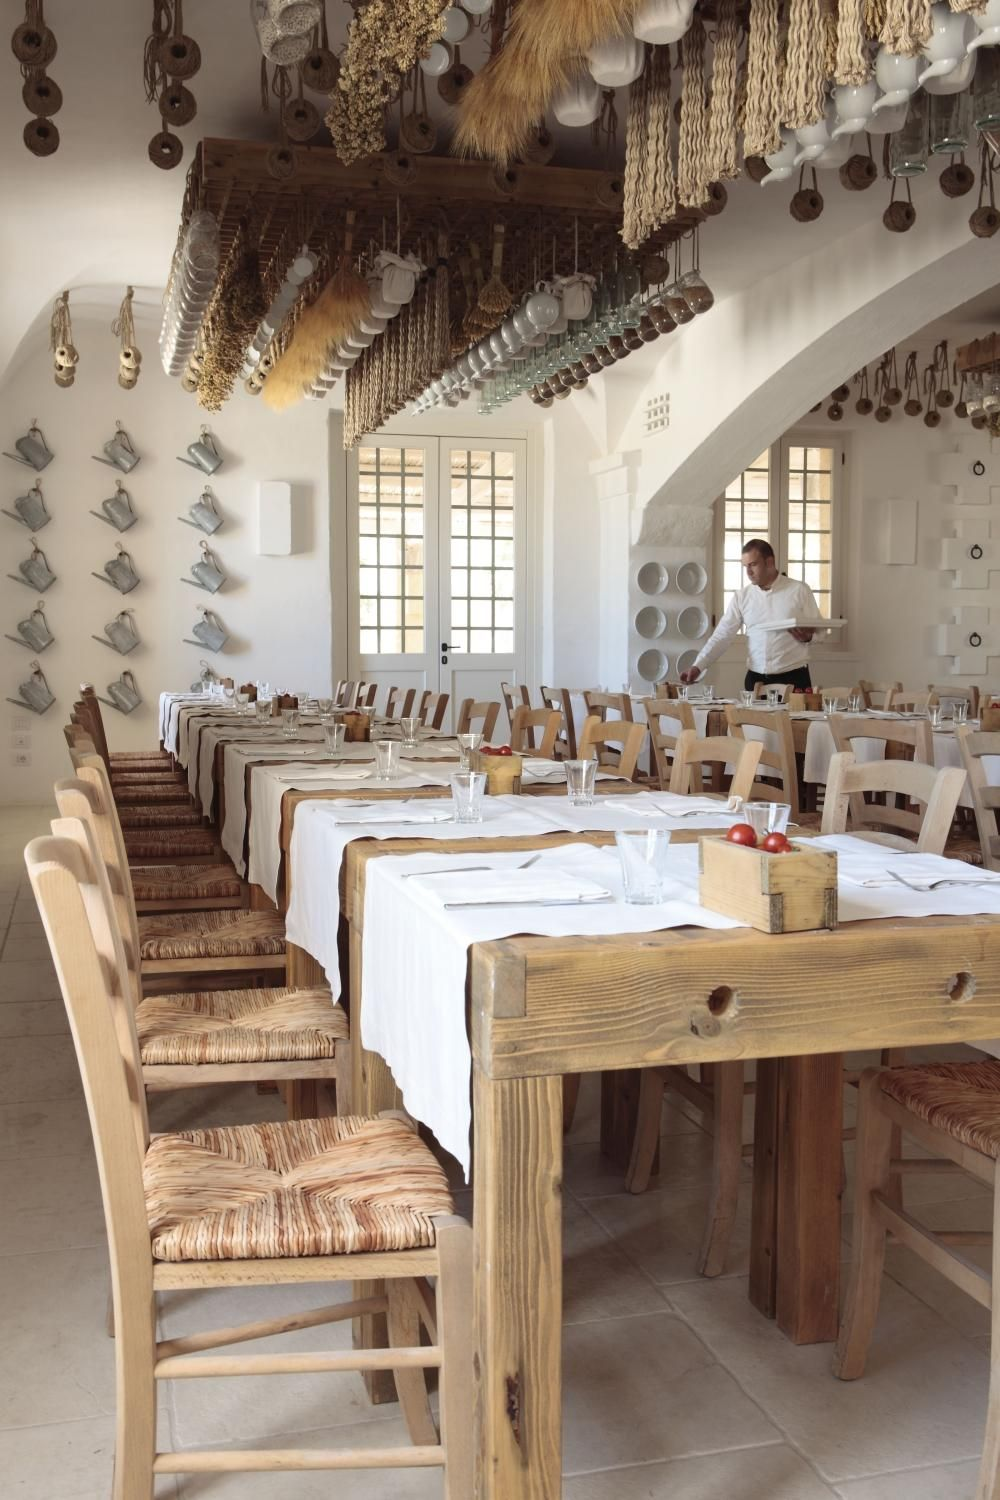 Borgo egnazia in 2019 restaurant rustic restaurant - Ivy interior design software reviews ...